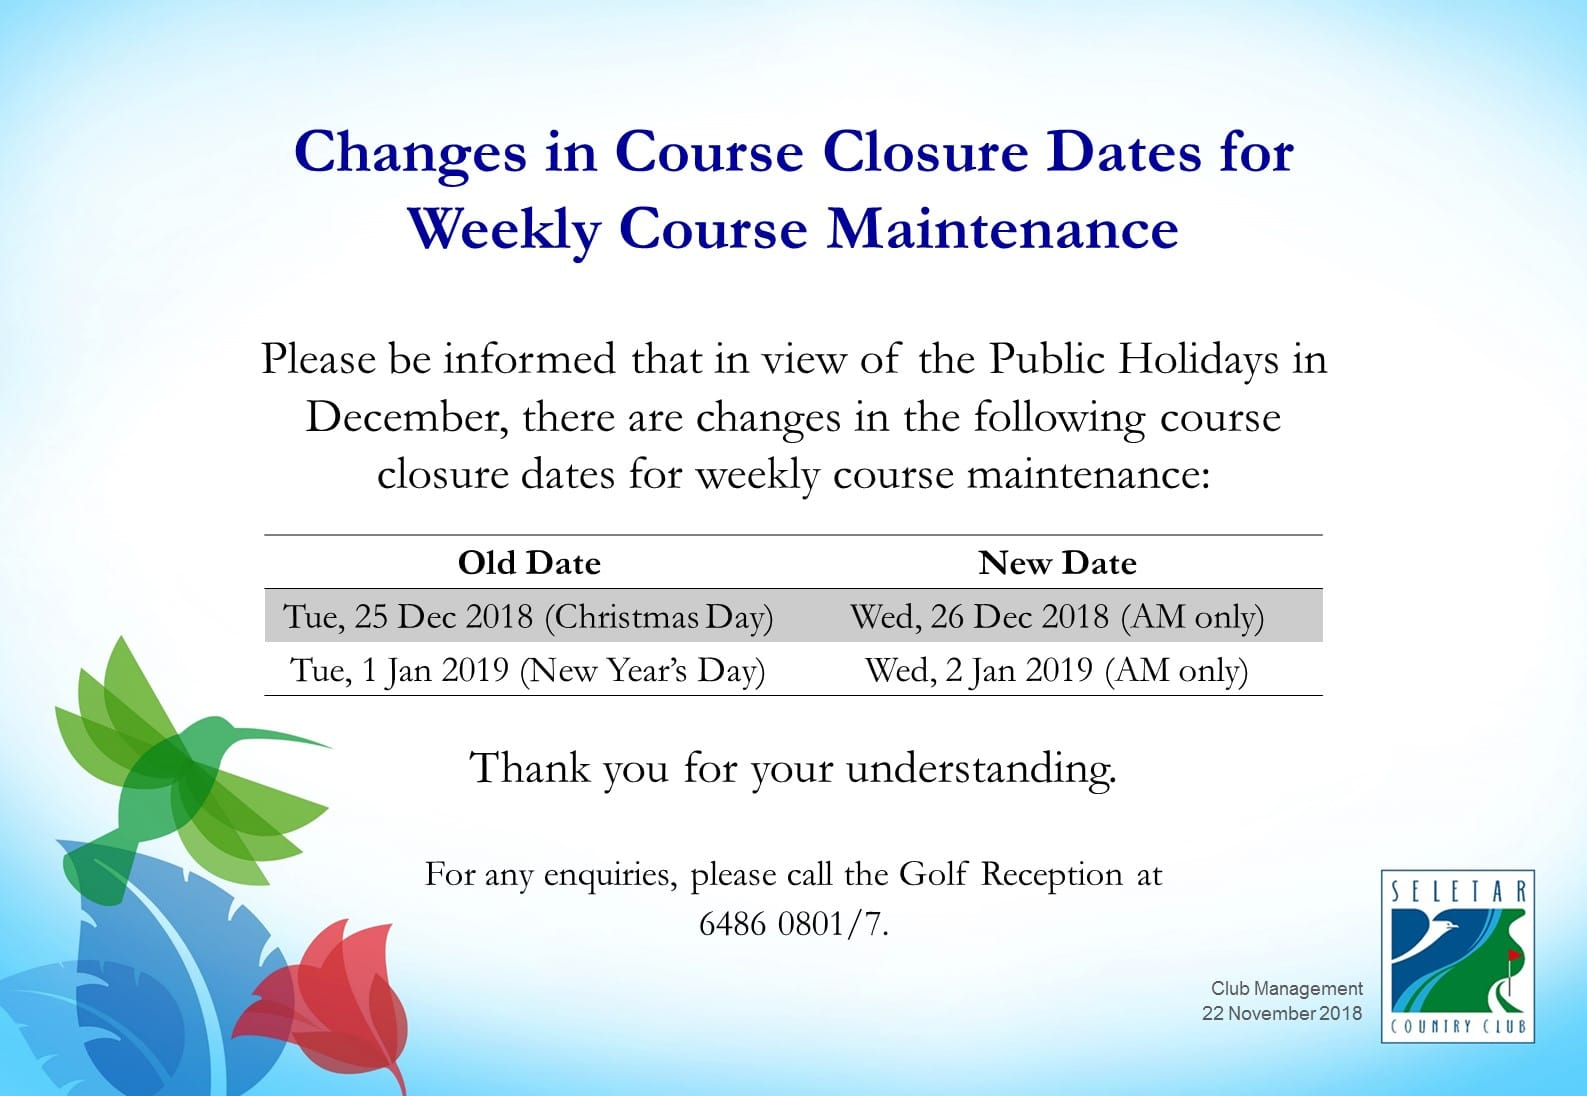 Changes in Dec's Weekly course maintenance dates_R2